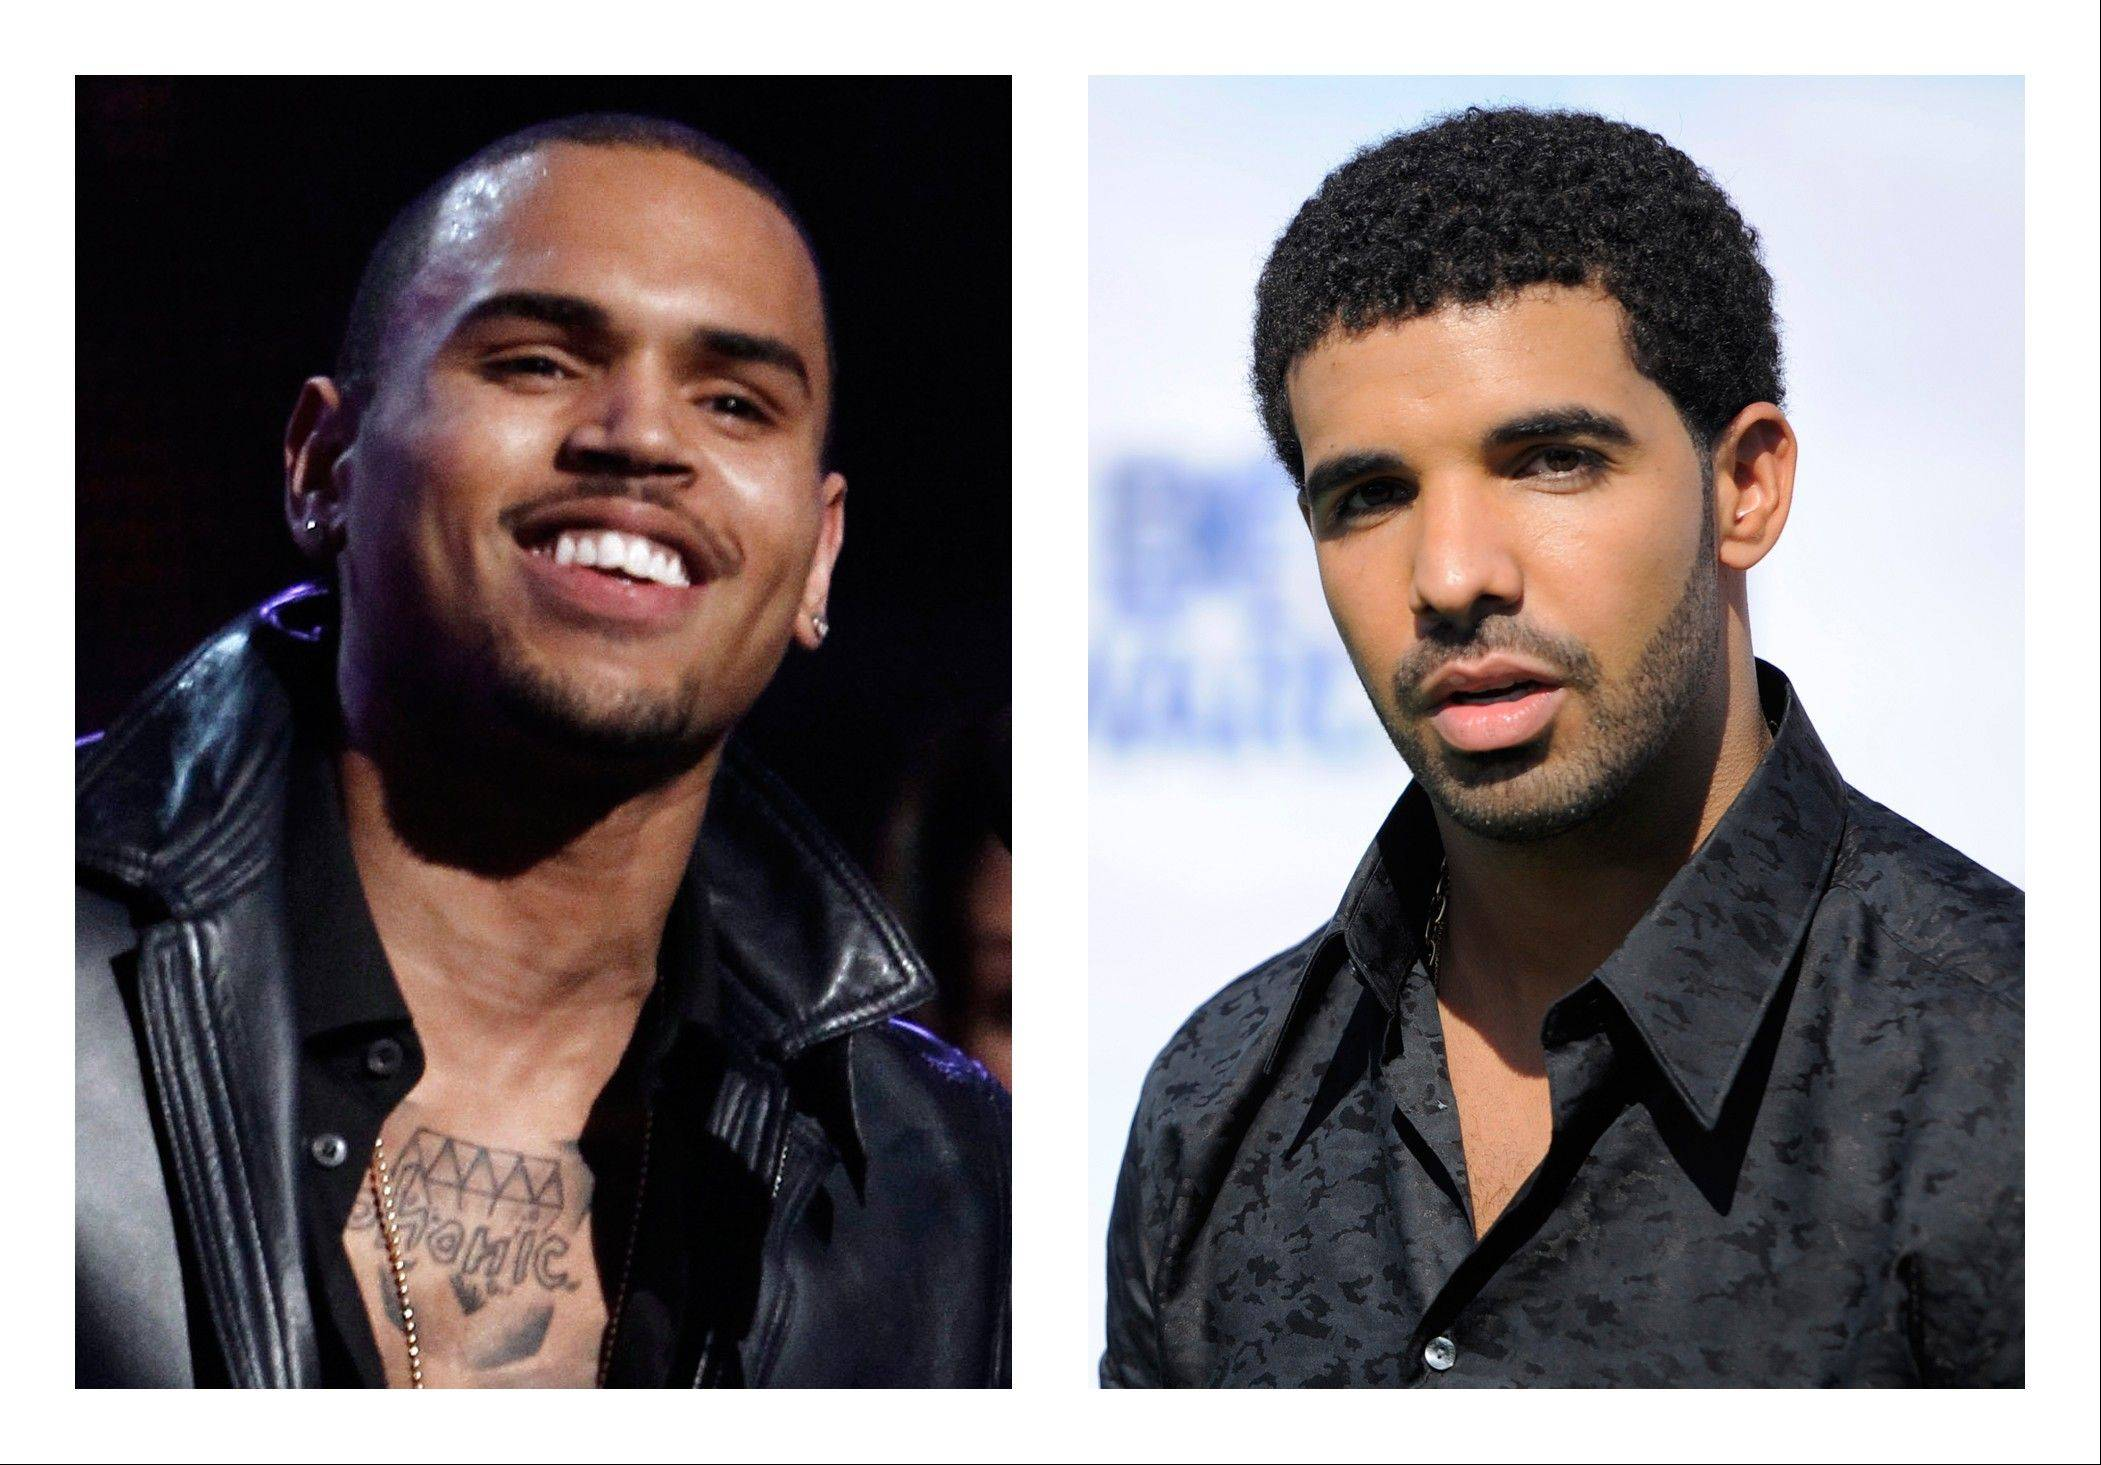 New York City police investigated a report Thursday of a bar brawl involving hip-hop stars Chris Brown, left, and Drake and their entourages in which bottles flew and five people were injured.